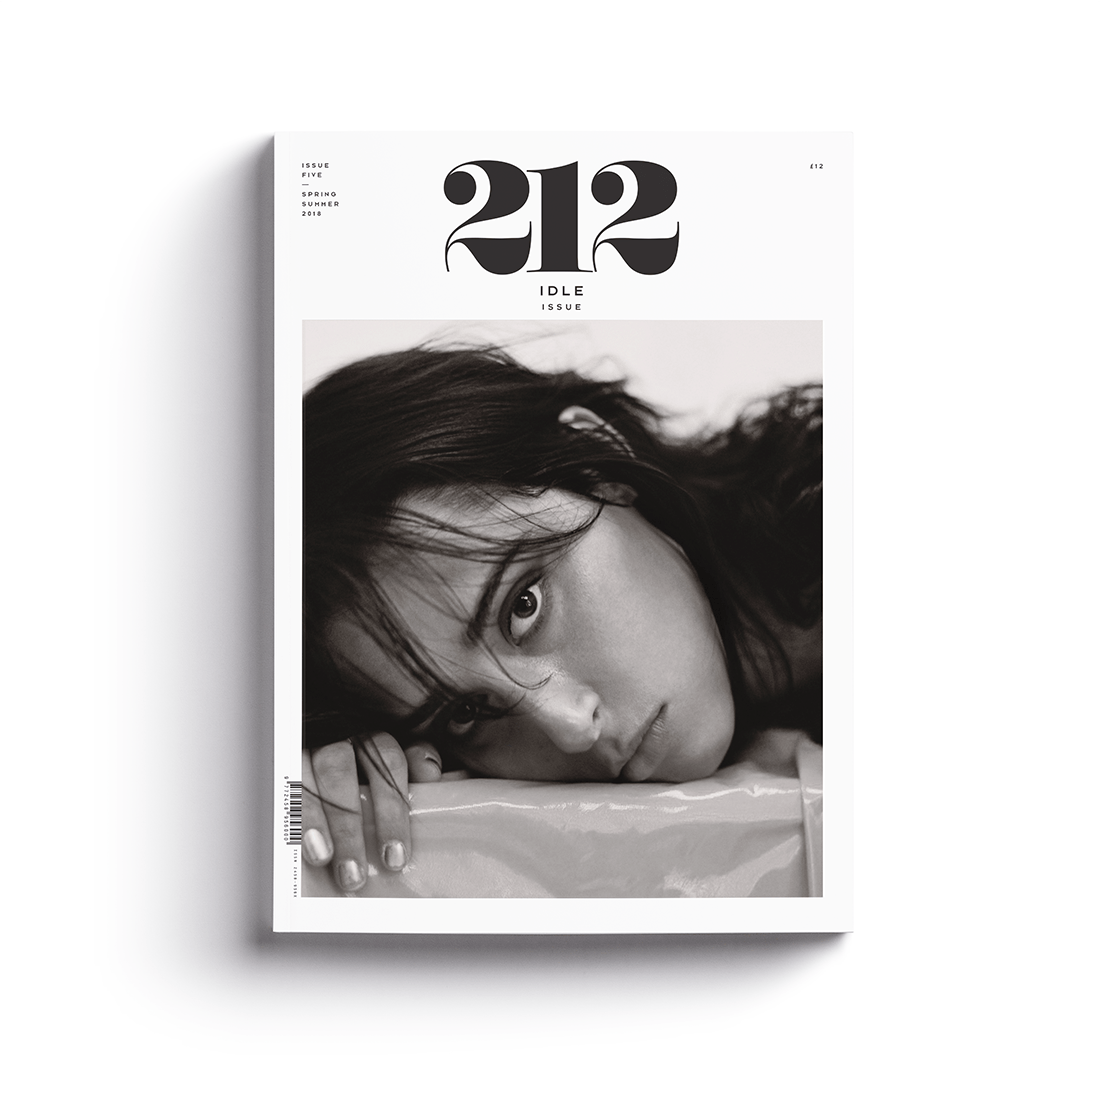 212 Issue 05 Idle